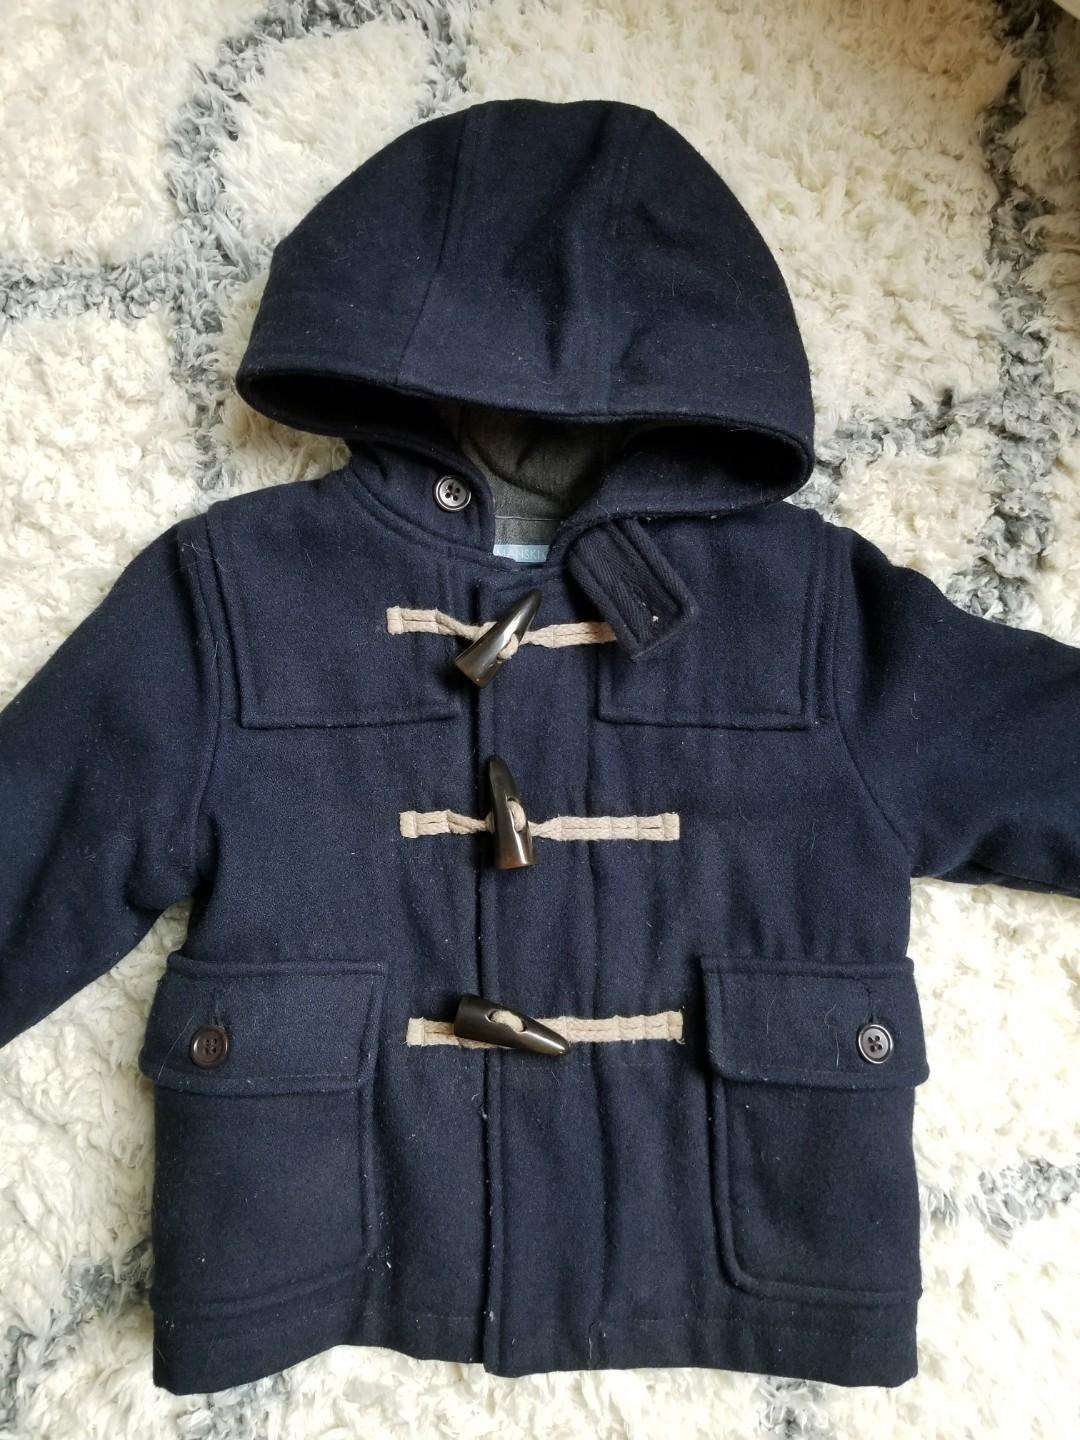 Baby Gap wool toggle coat jacket purchased New for $89. A must have for the winter holidays. Looks great for holiday parties or special occasions. A must have for baby toddler. In excellent condition. size 12-18mths.